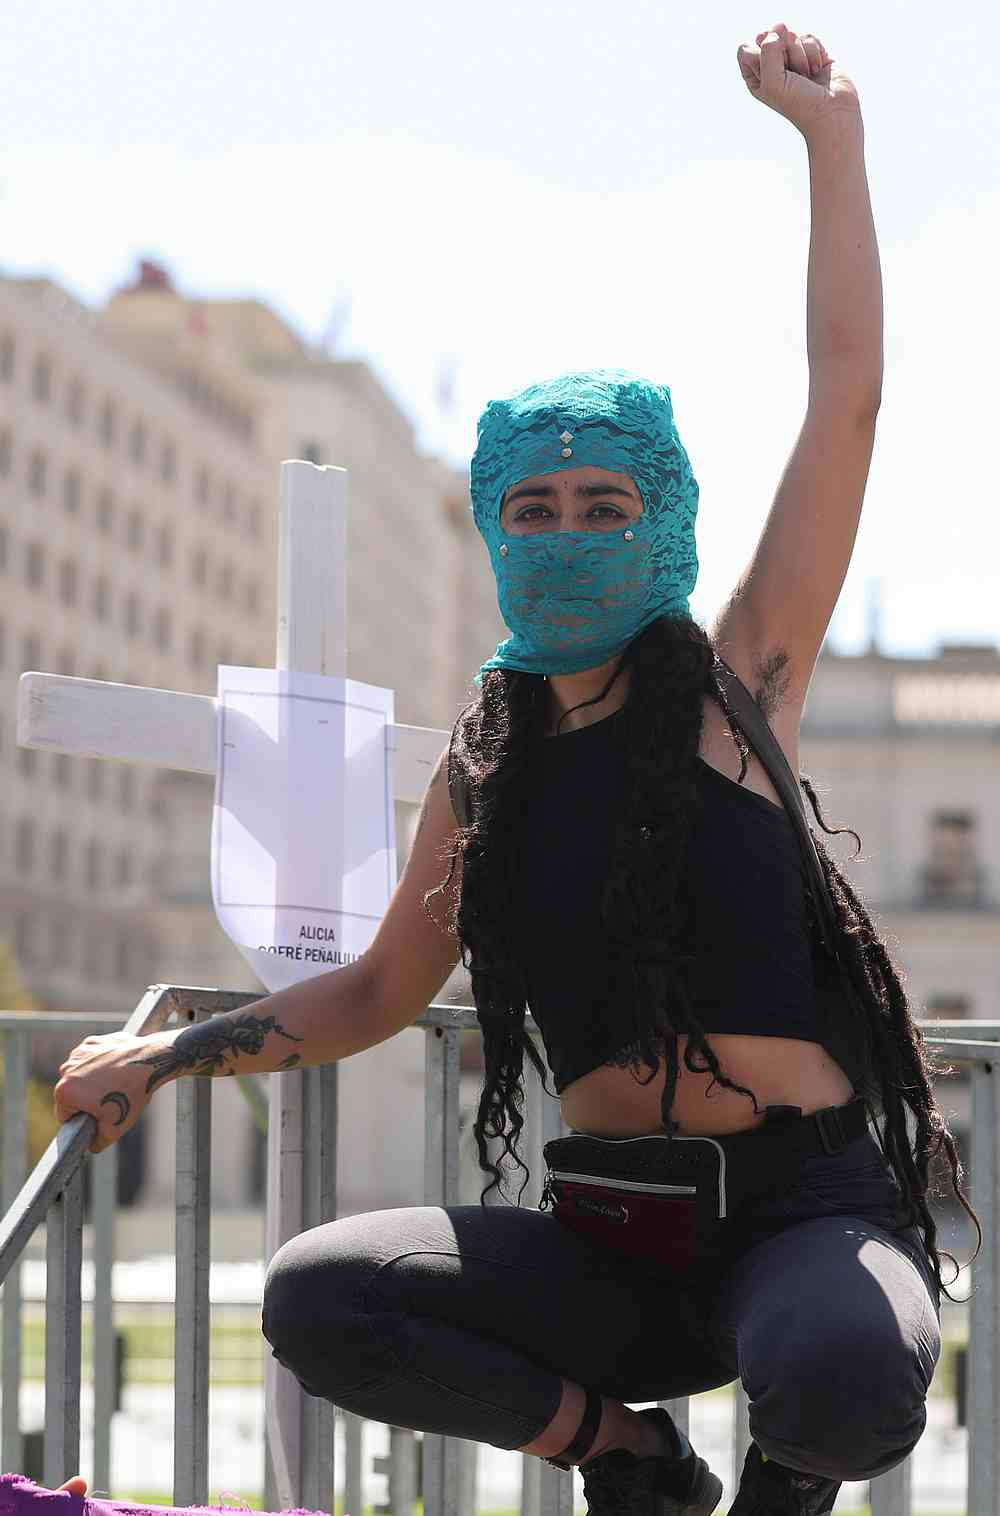 A demonstrator gestures during a rally to mark International Women's Day in Santiago, Chile March 8, 2020. — Reuters pic